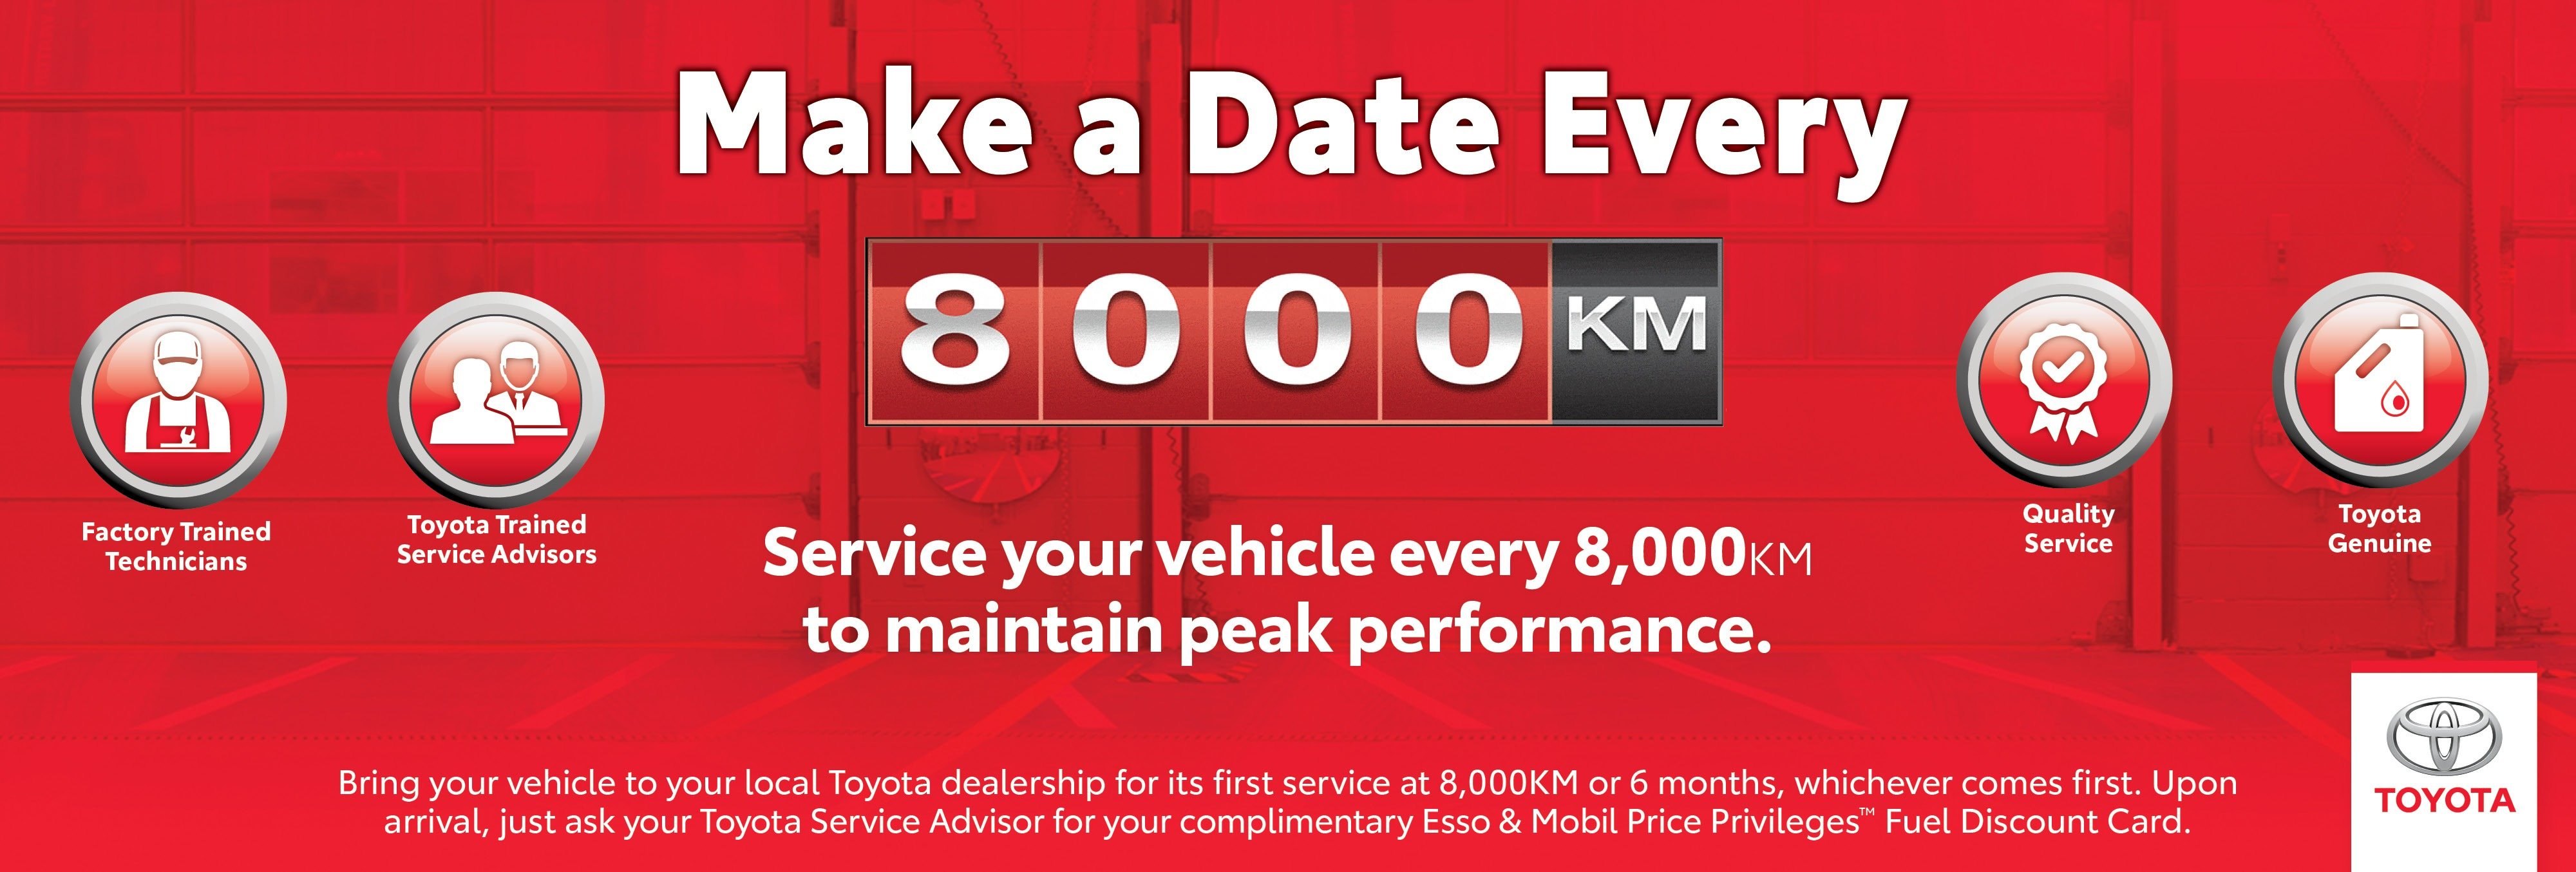 Make a Date Every 8000 km